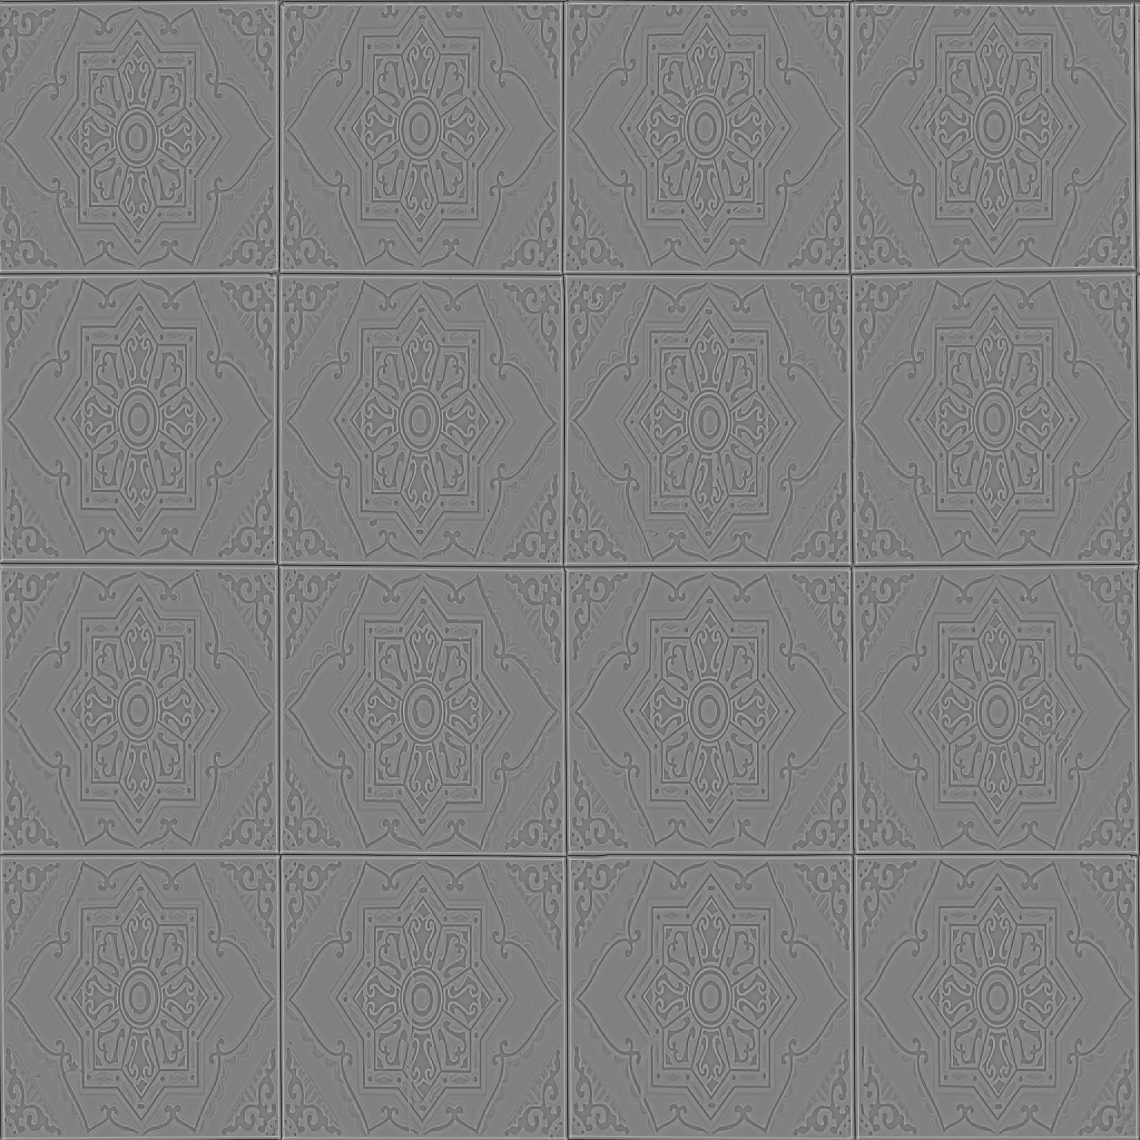 Ornate-Tiles-01-Curvature - Seamless